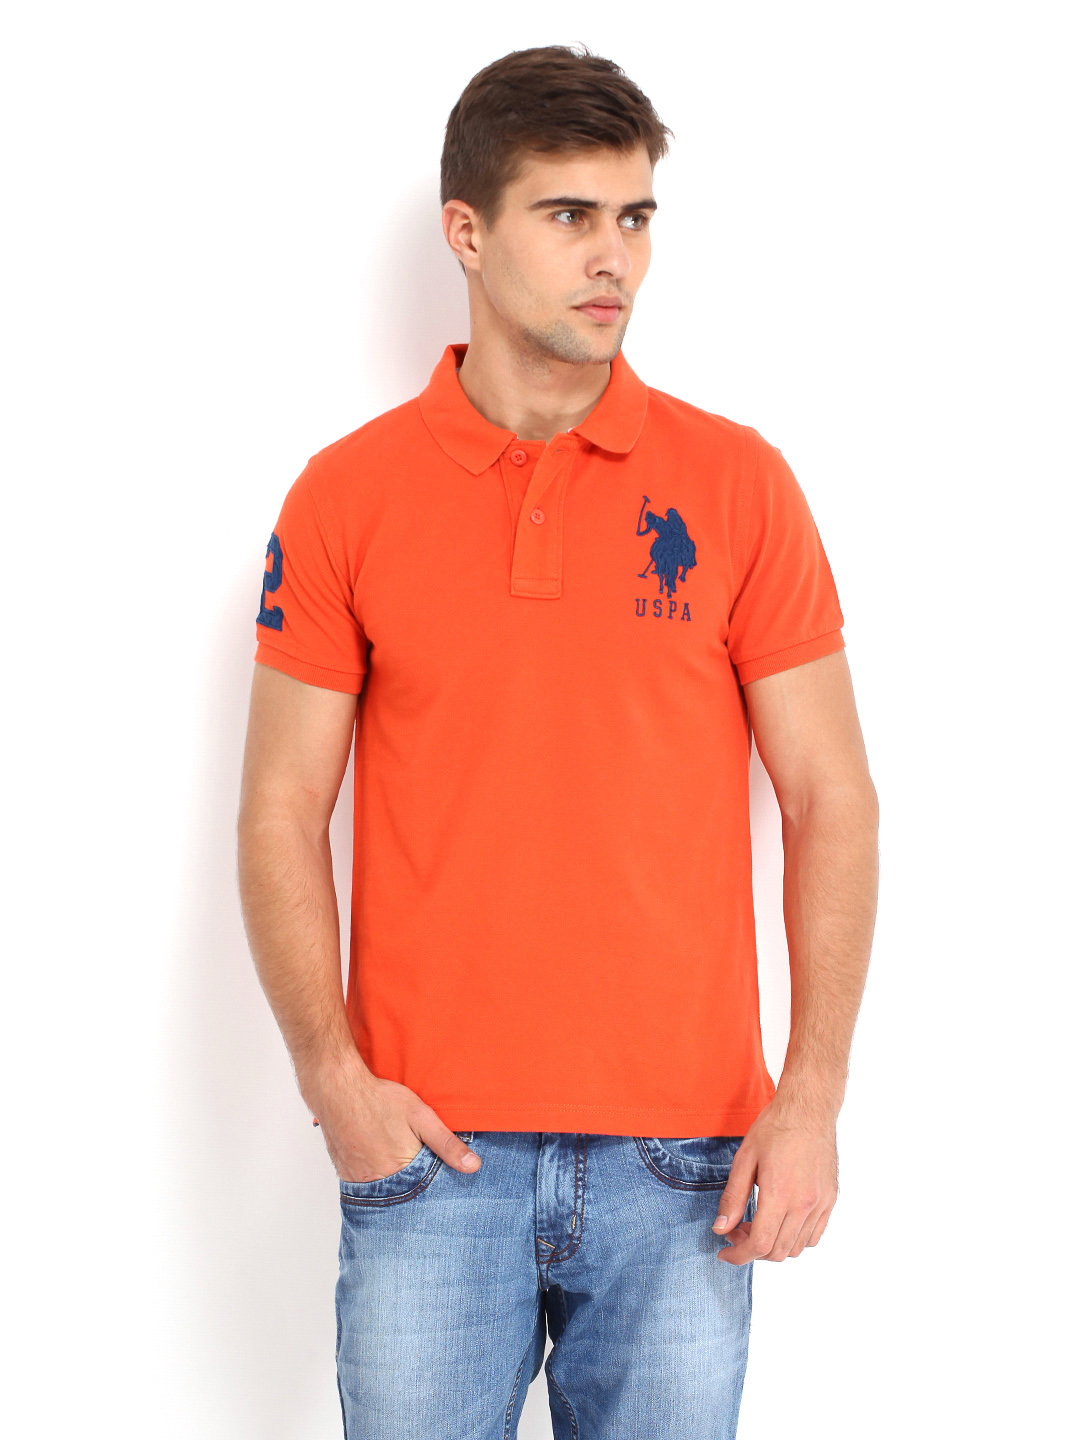 U s polo cotton orange polo t shirt g3 mts5373 for Us polo shirts for mens